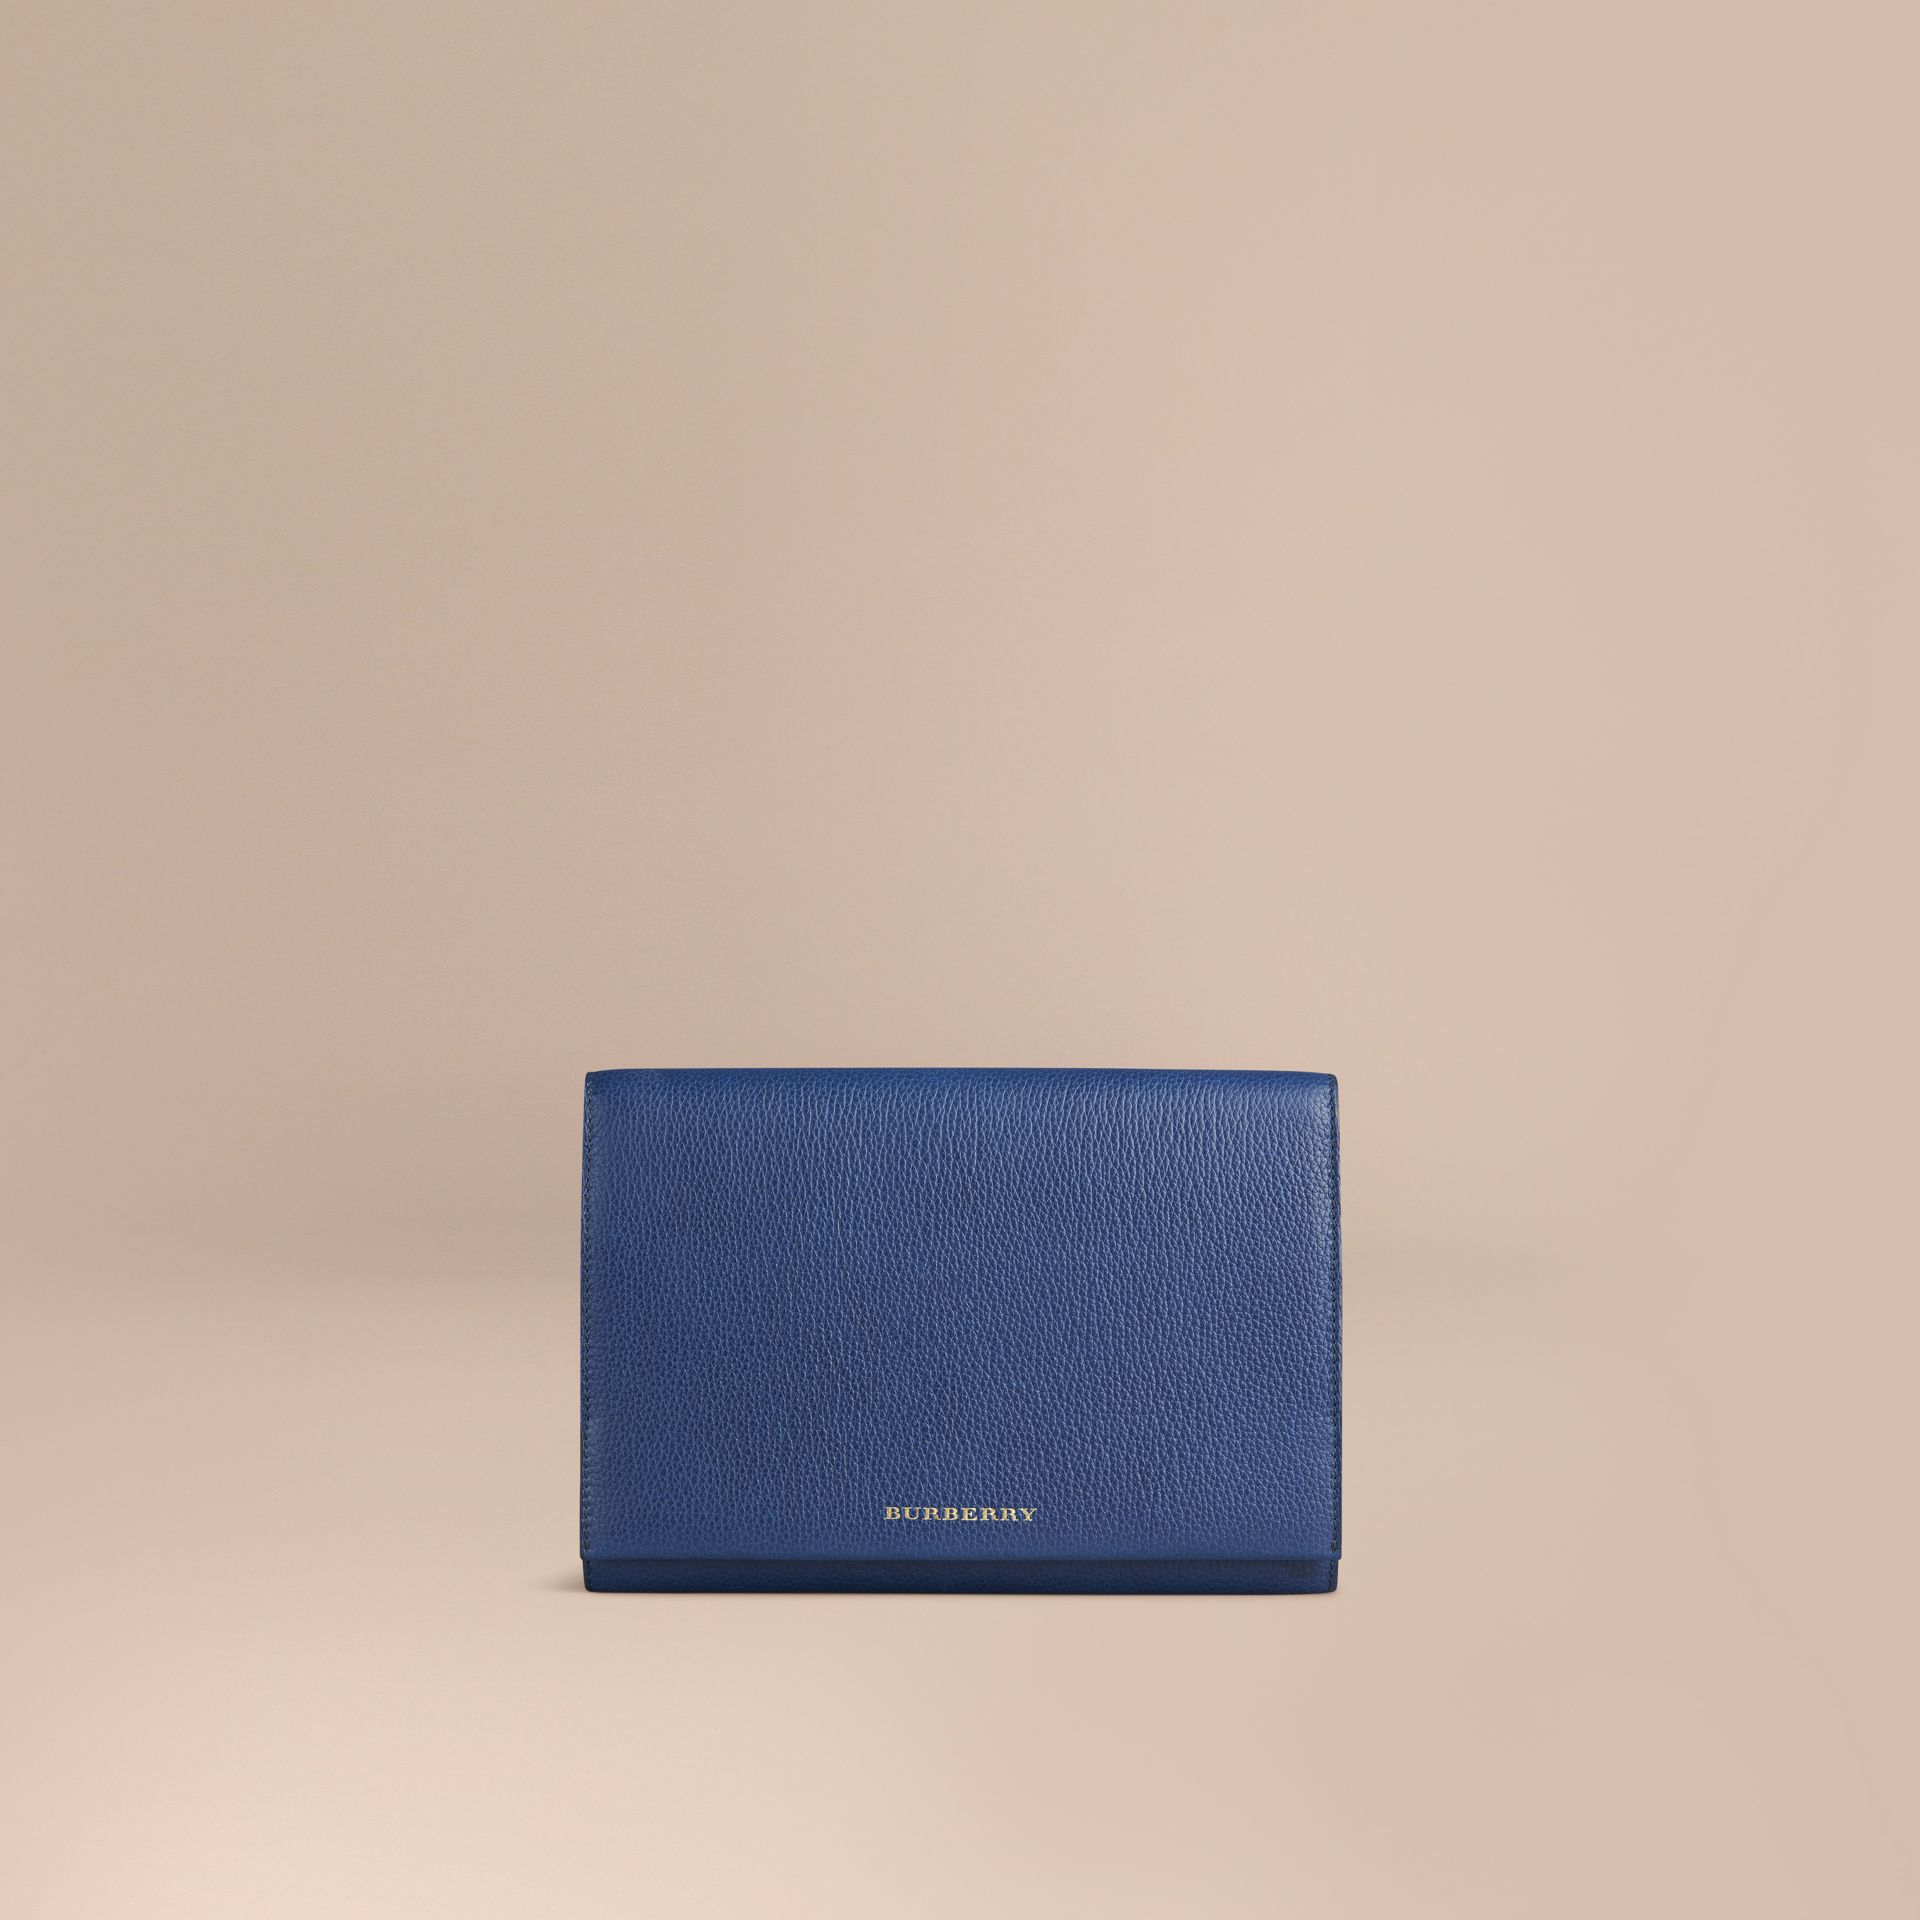 Grainy Leather Travel Wallet in Bright Navy - Men | Burberry - gallery image 1